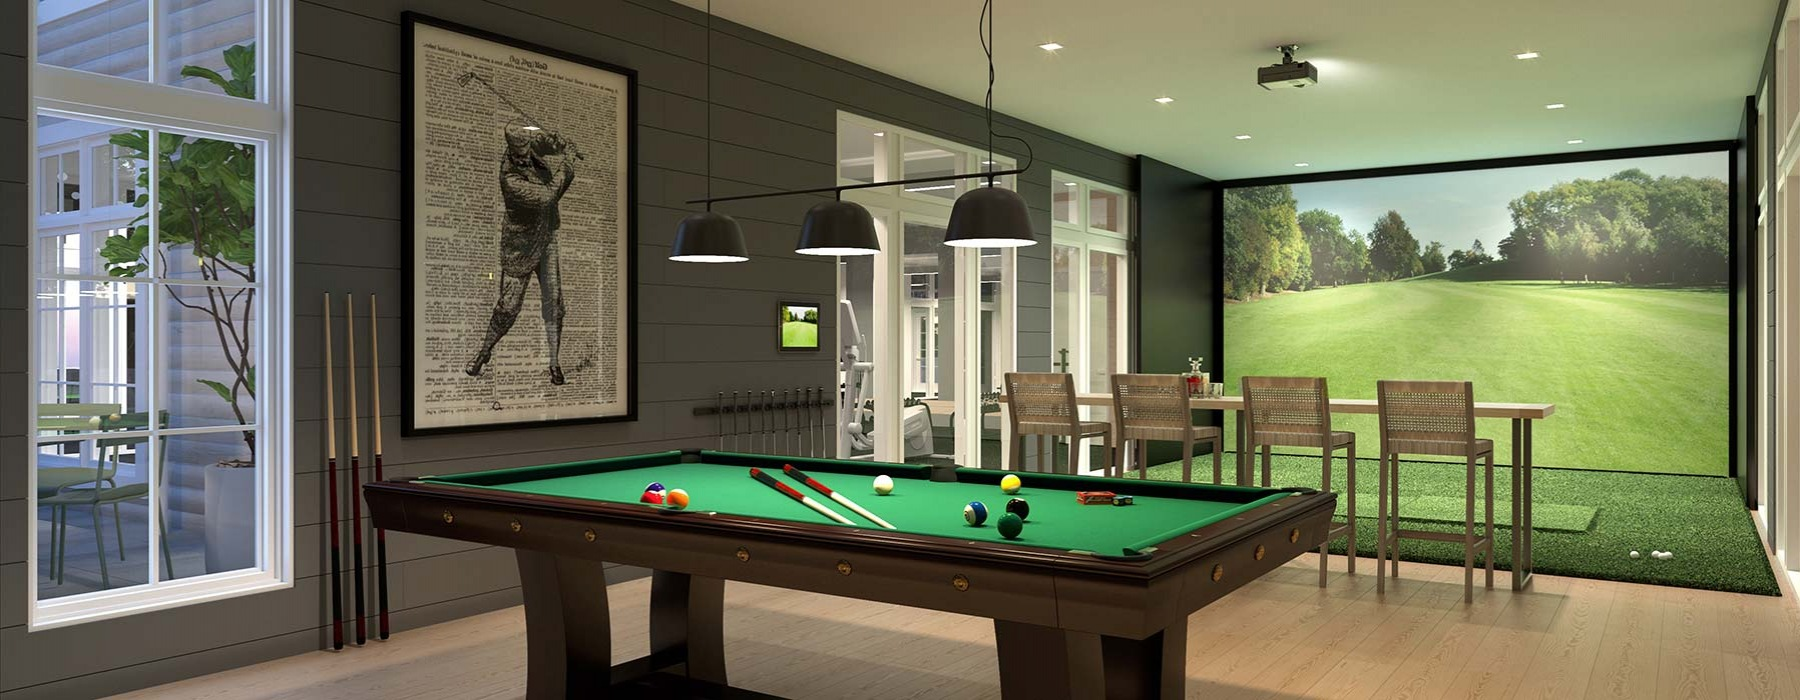 game room with golf simulator